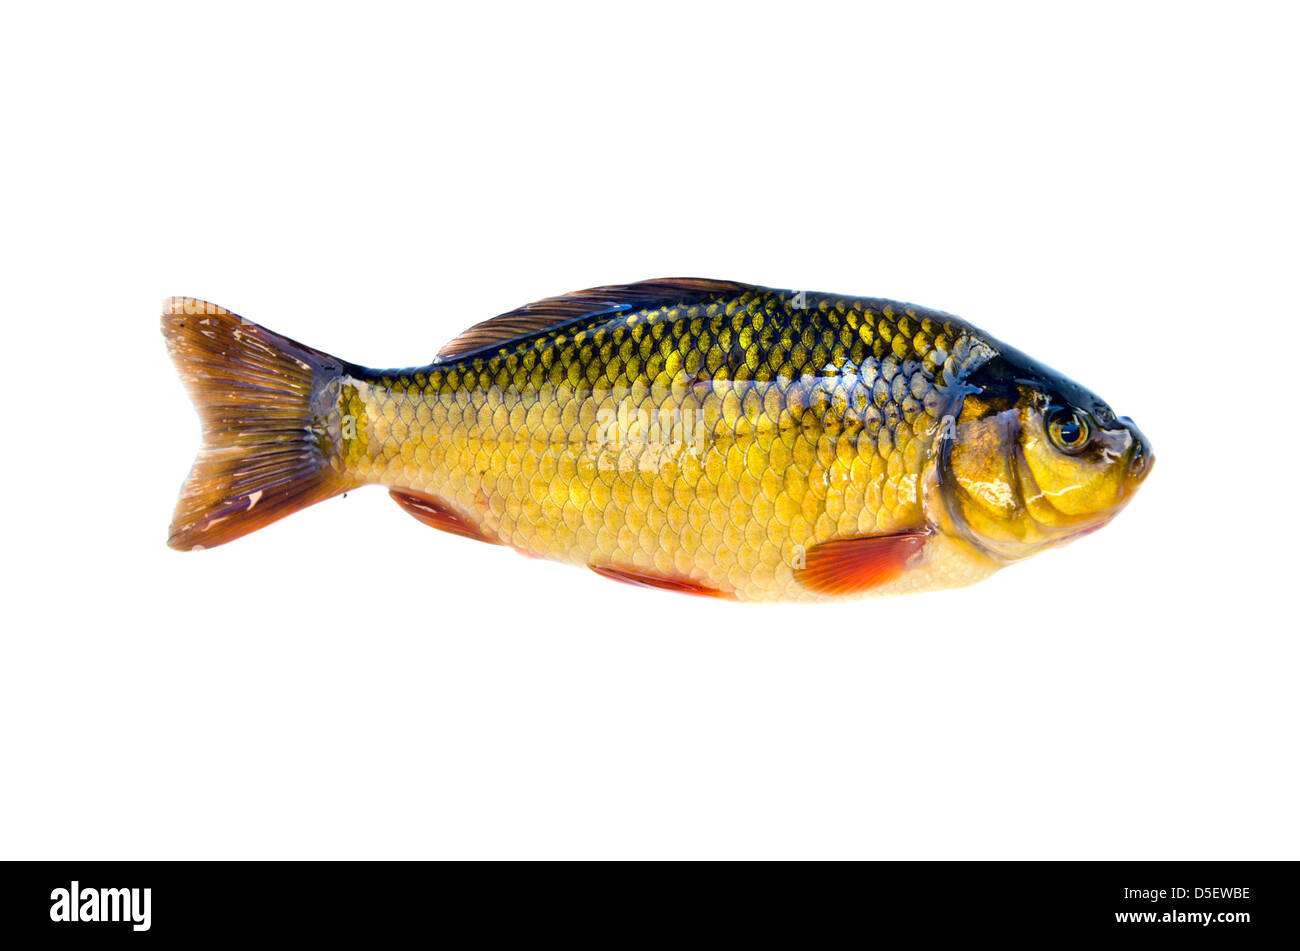 How to catch a crucian carp on a float rod - advice from anglers 62